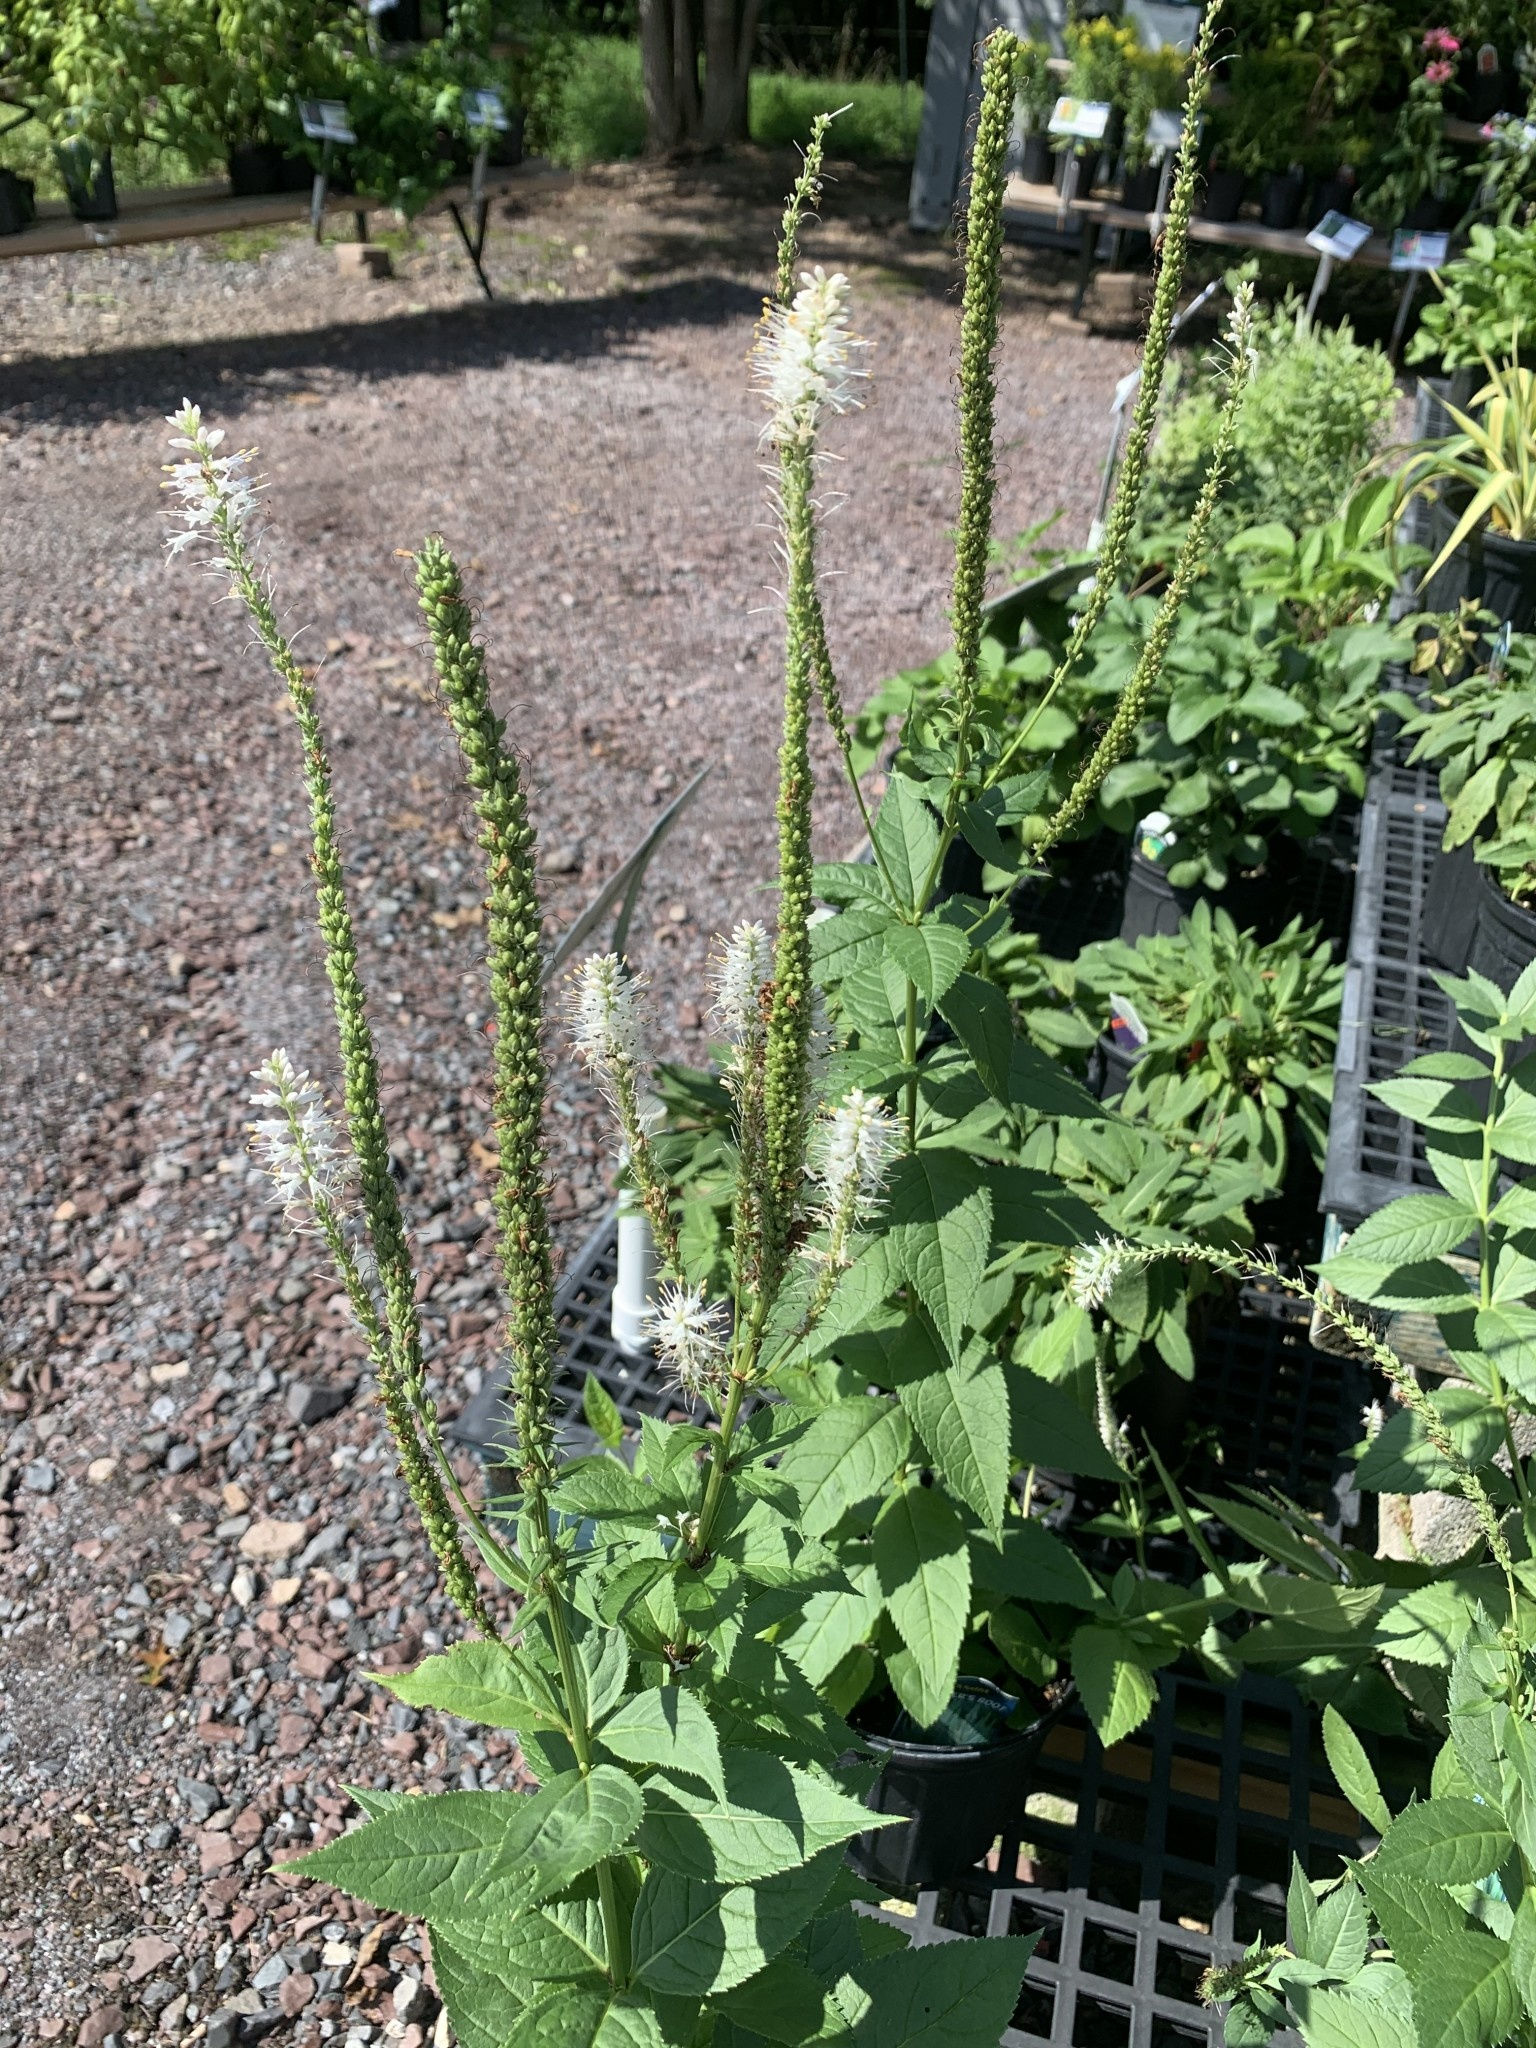 Veronicastrum vir. Alba Culver's Root, #1